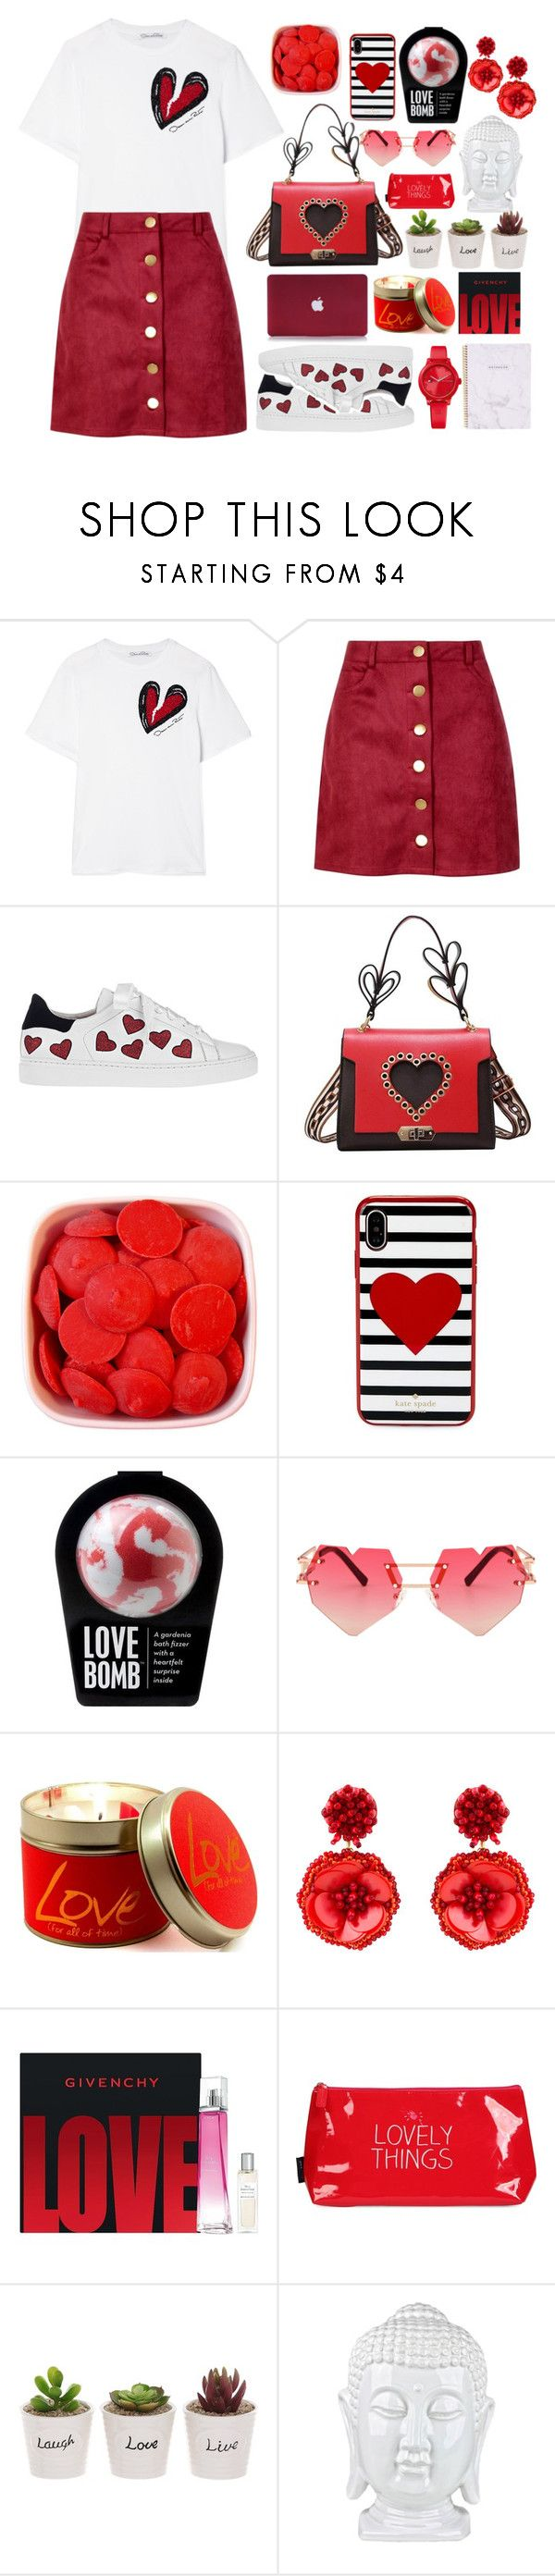 """""""#Hearts & Chic"""" by juliateodora on Polyvore featuring Oscar de la Renta, Boohoo, Steffen Schraut, Kate Spade, Lily-Flame, Mignonne Gavigan, Givenchy, Happy Jackson and Tommy Hilfiger"""